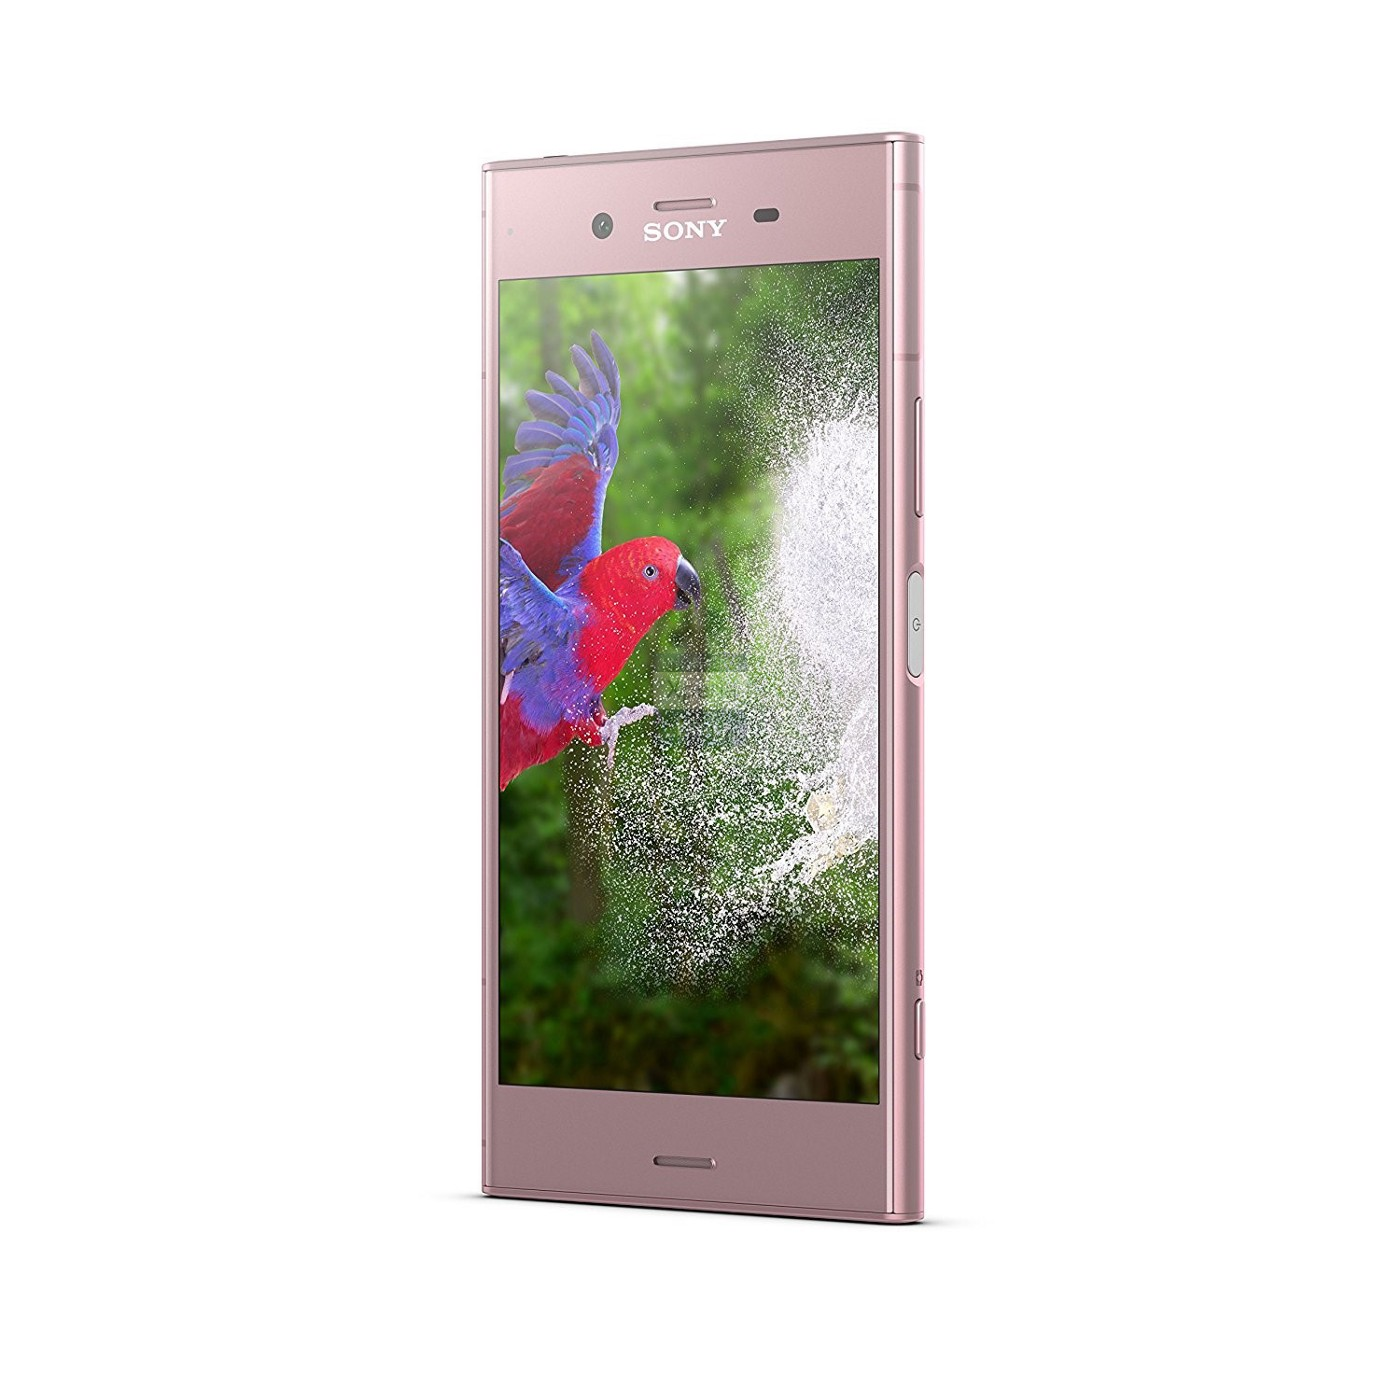 Sony Xperia XZ1 press photos leak - Sony Reconsidered